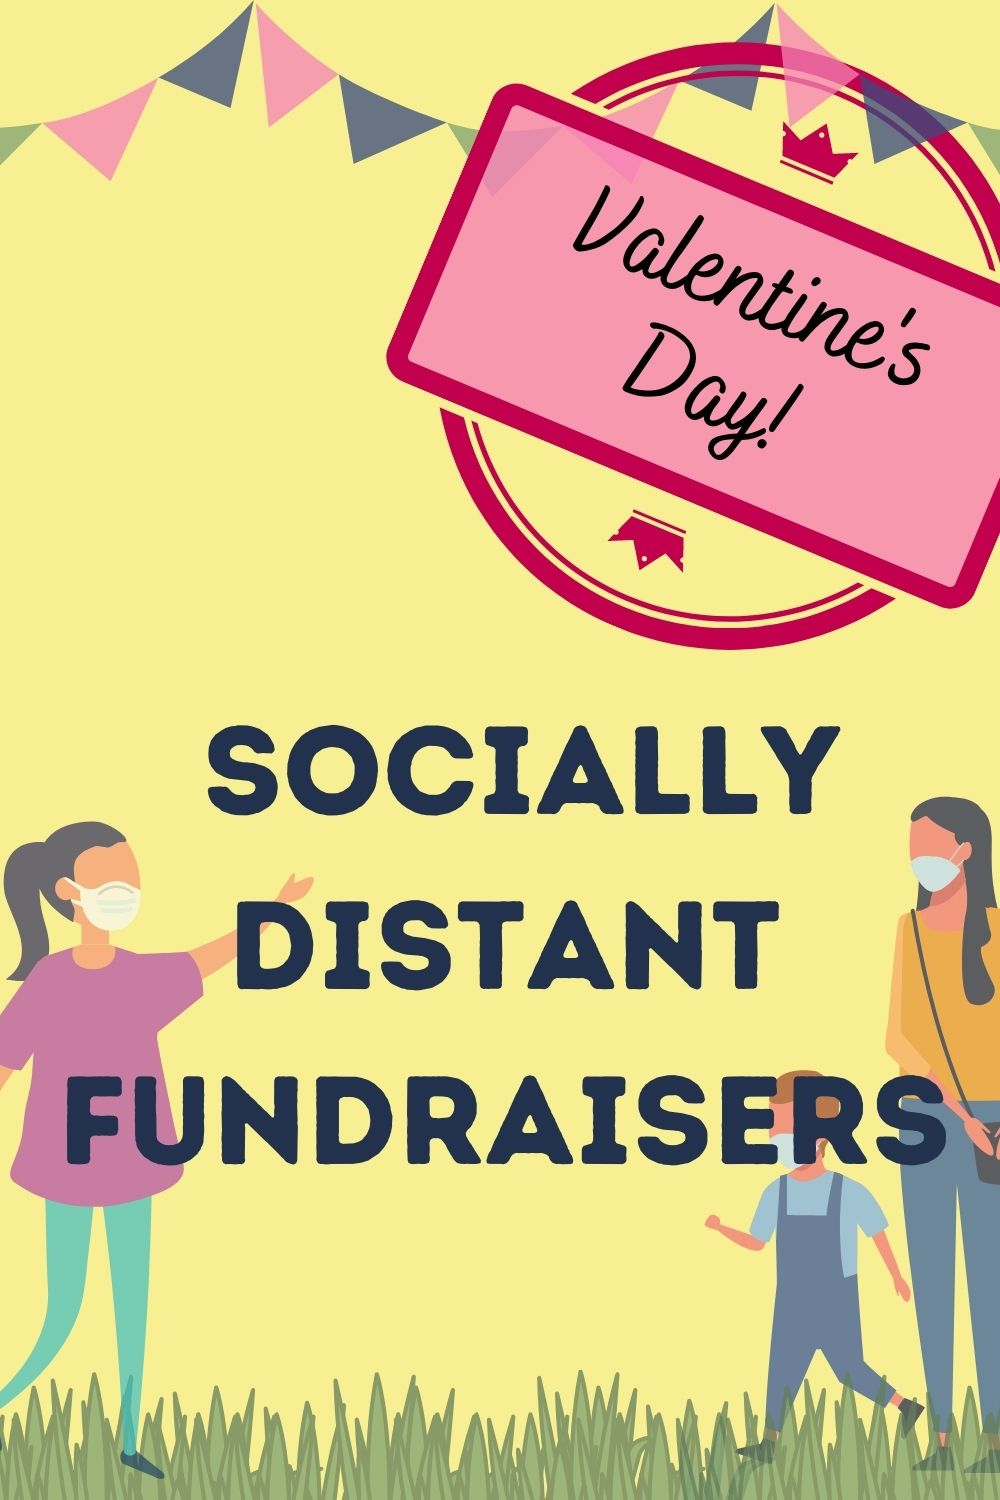 Take your Valentine's day fundraiser online this year